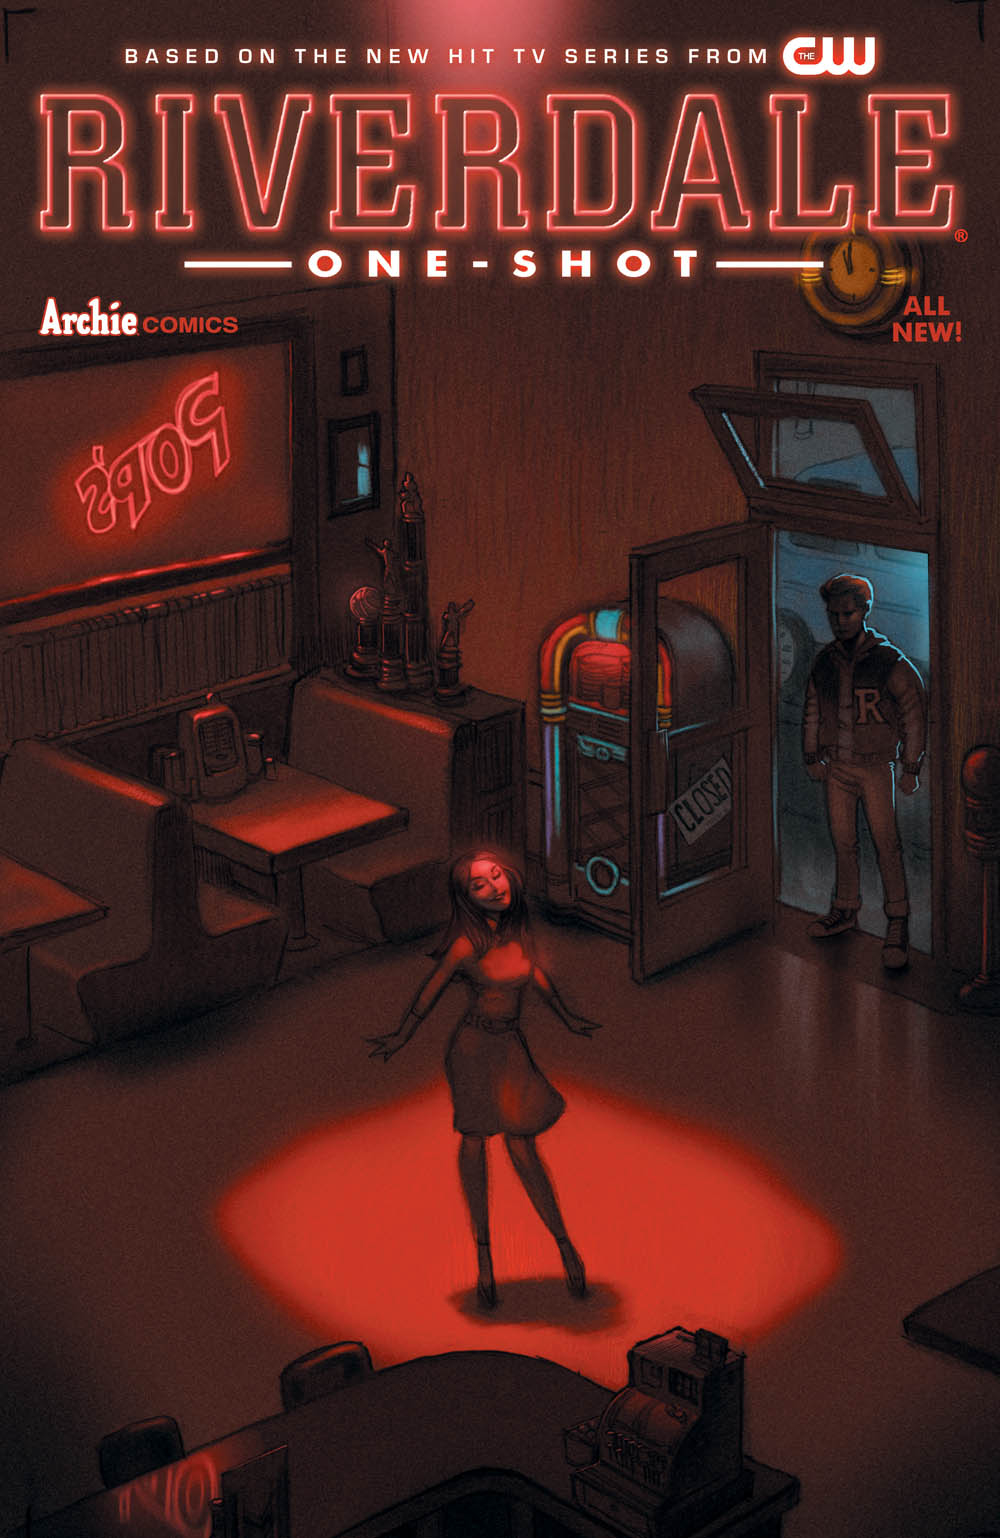 Riverdale one-shot cover by Moritat